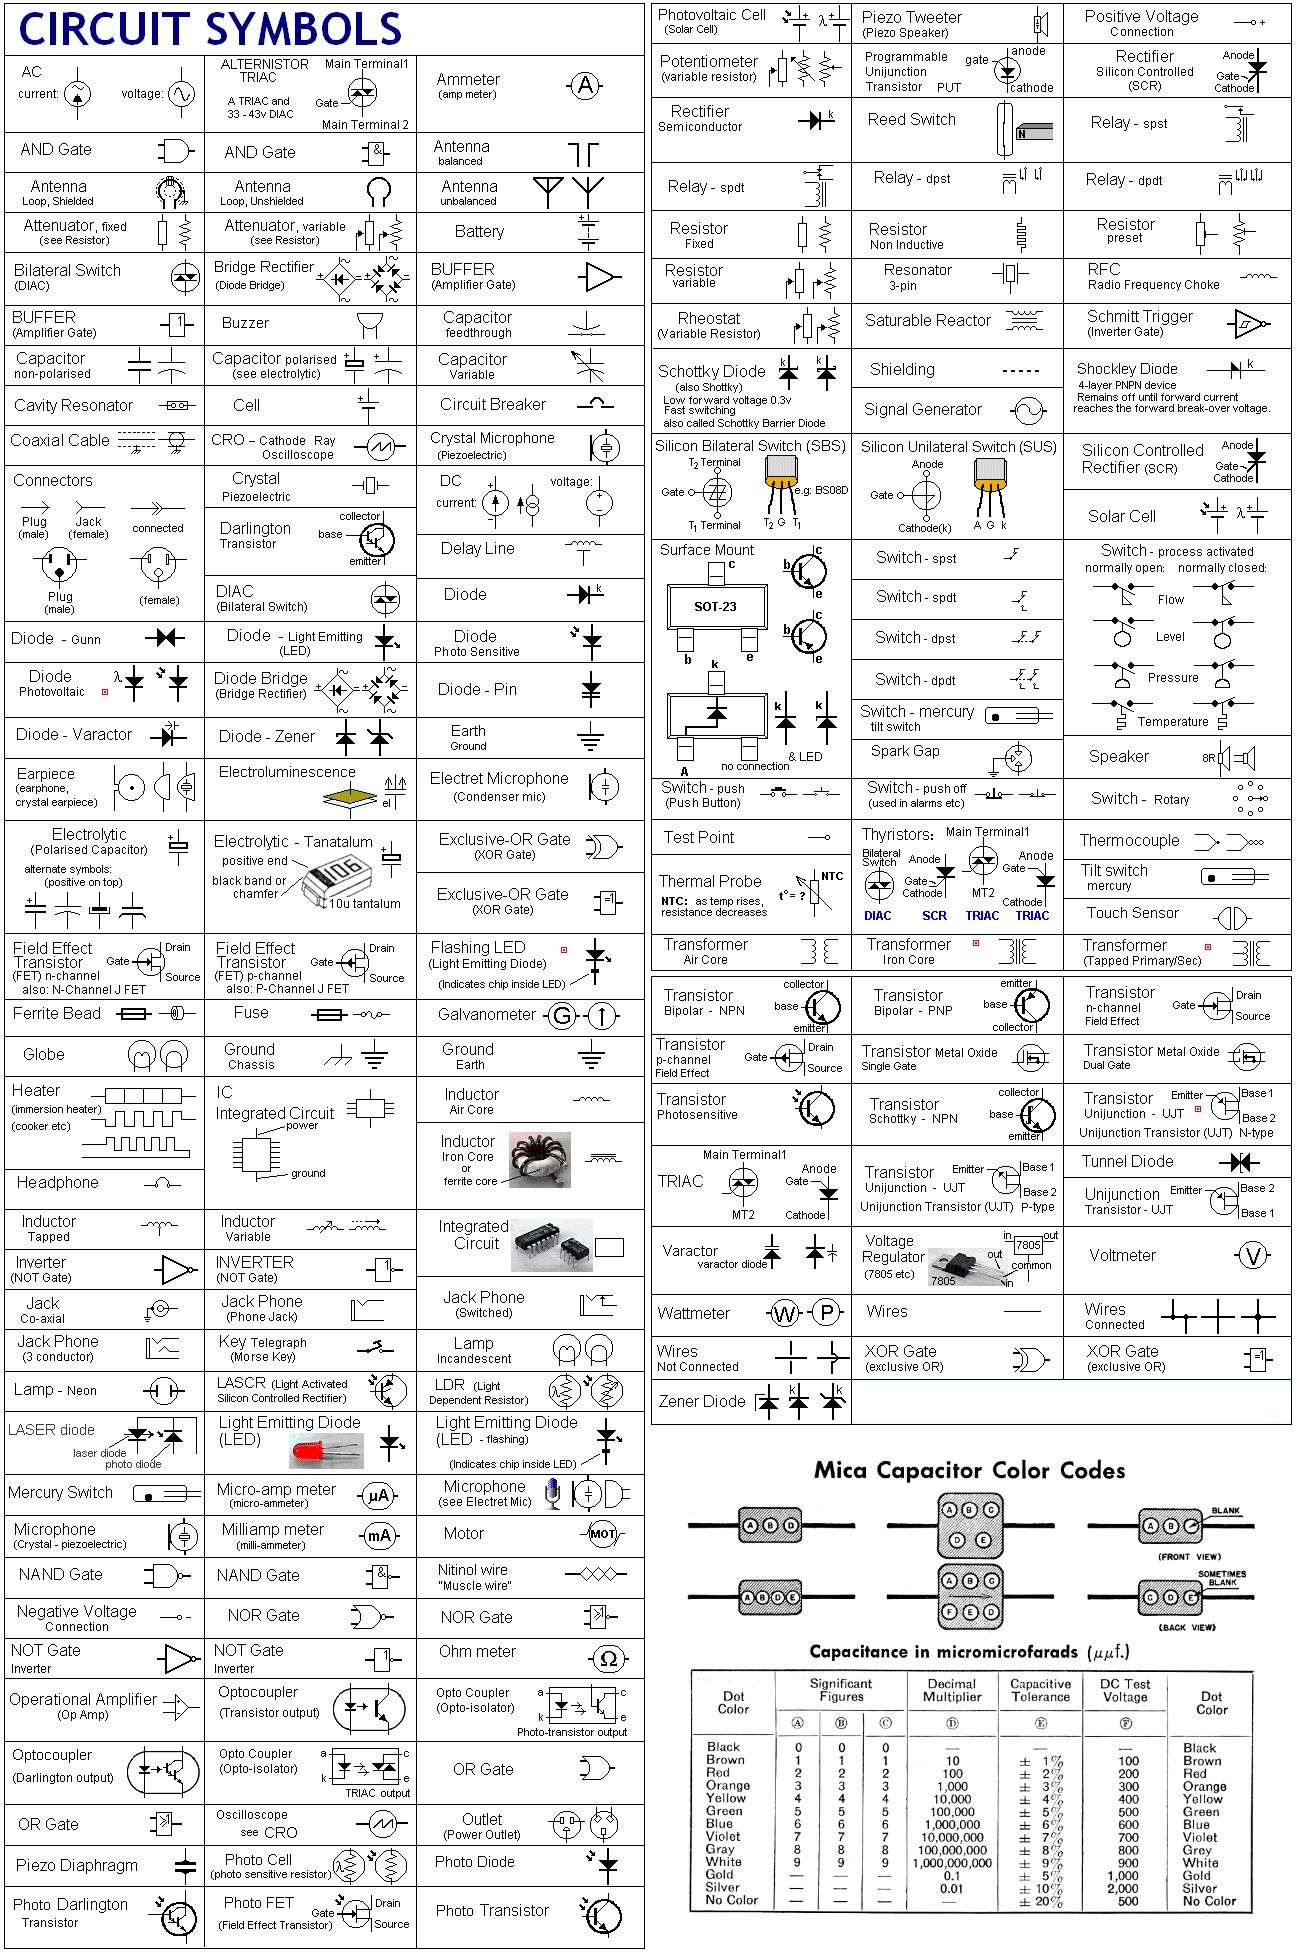 6c64fb84c8e162b28334051891c290f4 schematic symbols chart electric circuit symbols a considerably wiring diagram symbols chart at gsmx.co